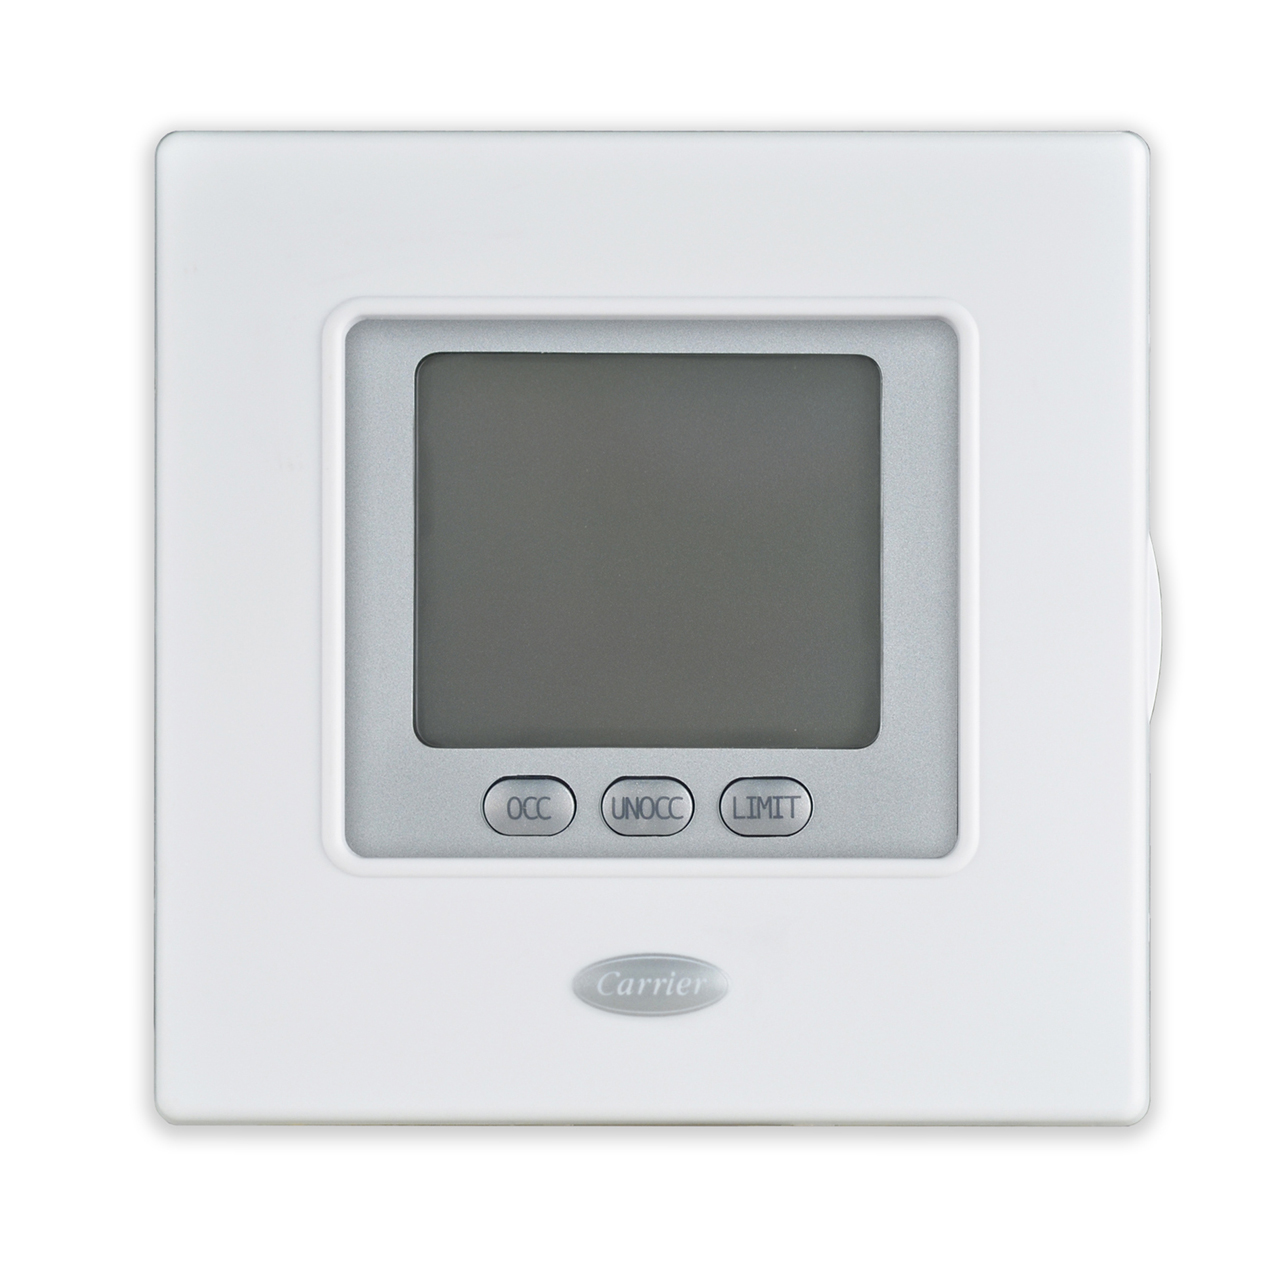 carrier-33CSCPACHP-01-non-communicating-programmable-thermostat